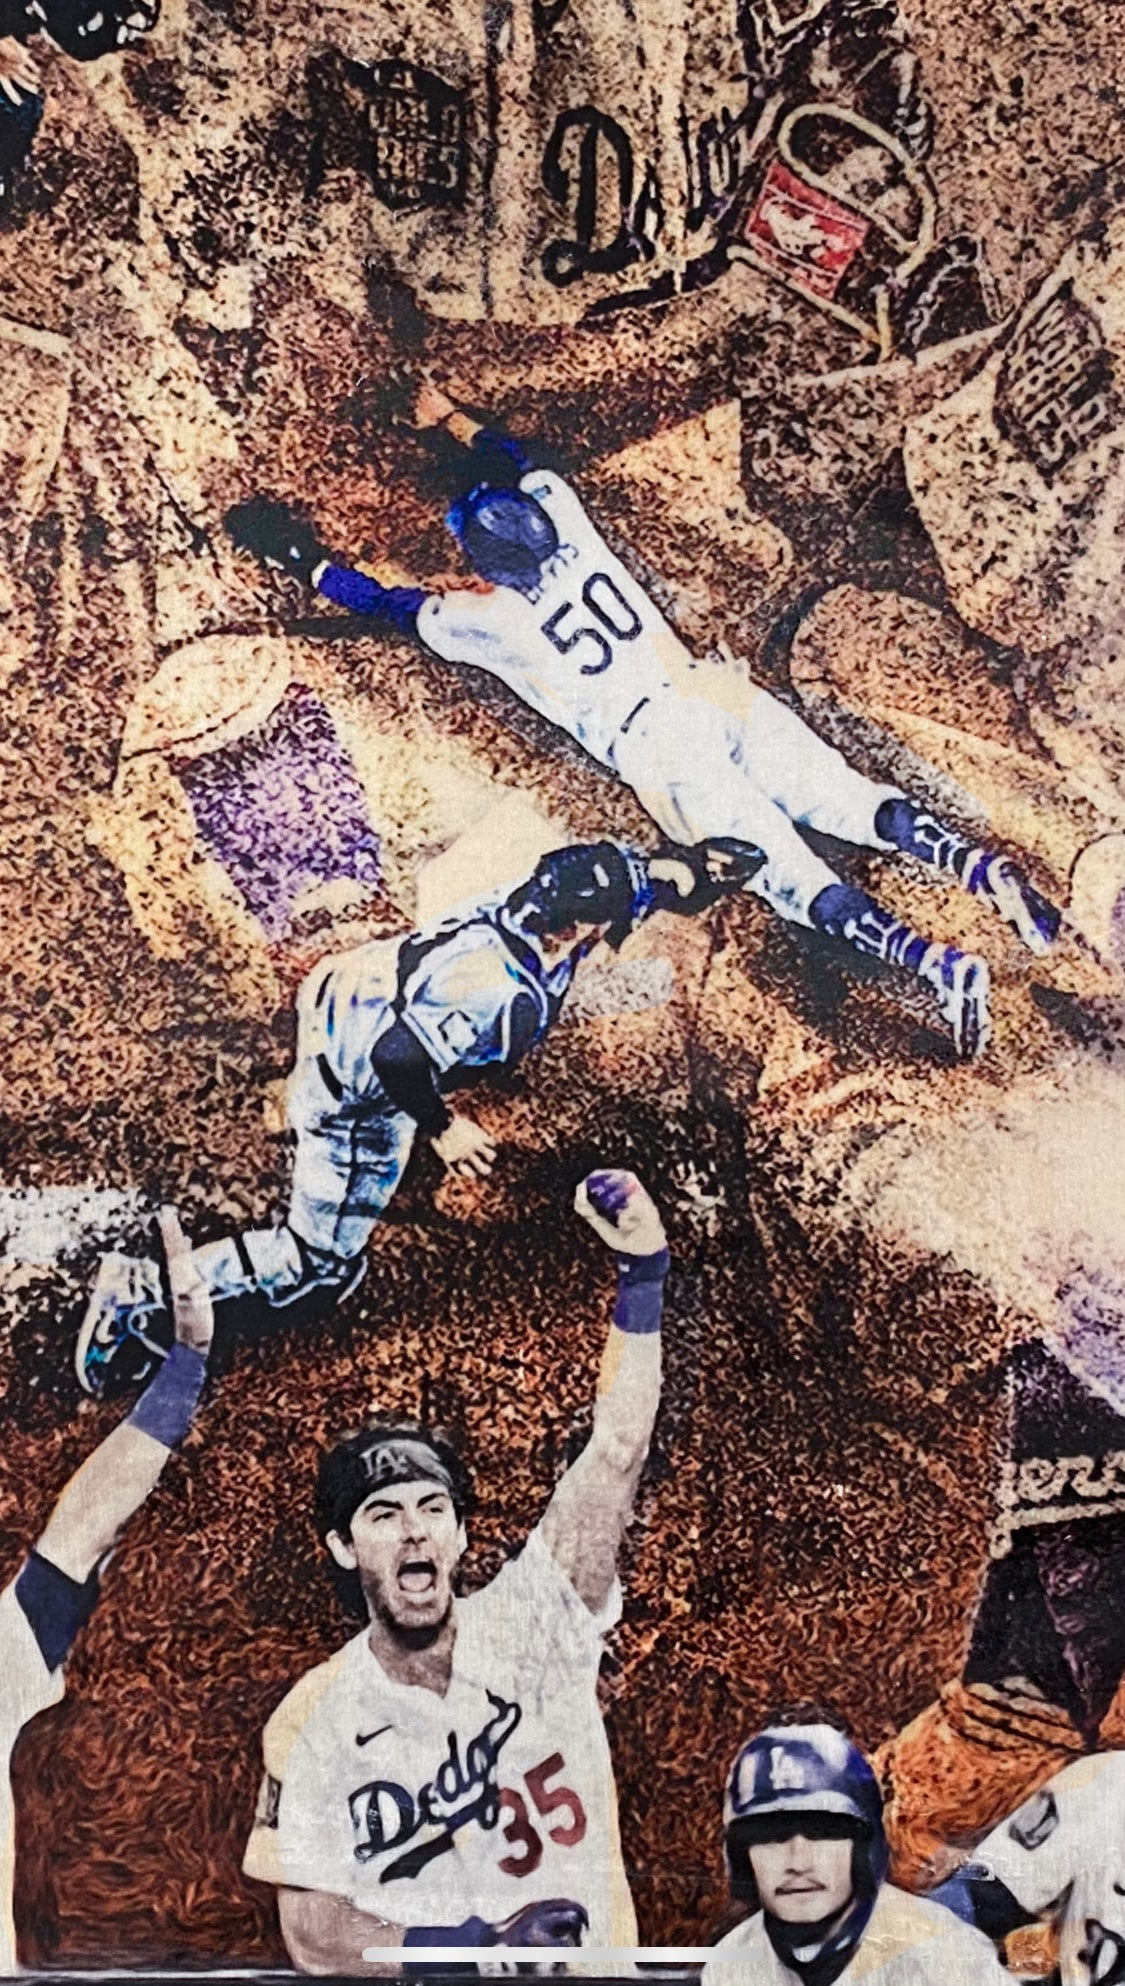 """Play at the Plate"" (World Series Commemorative Piece Part II) Los Angeles Dodgers - 1/1 Original on Wood"